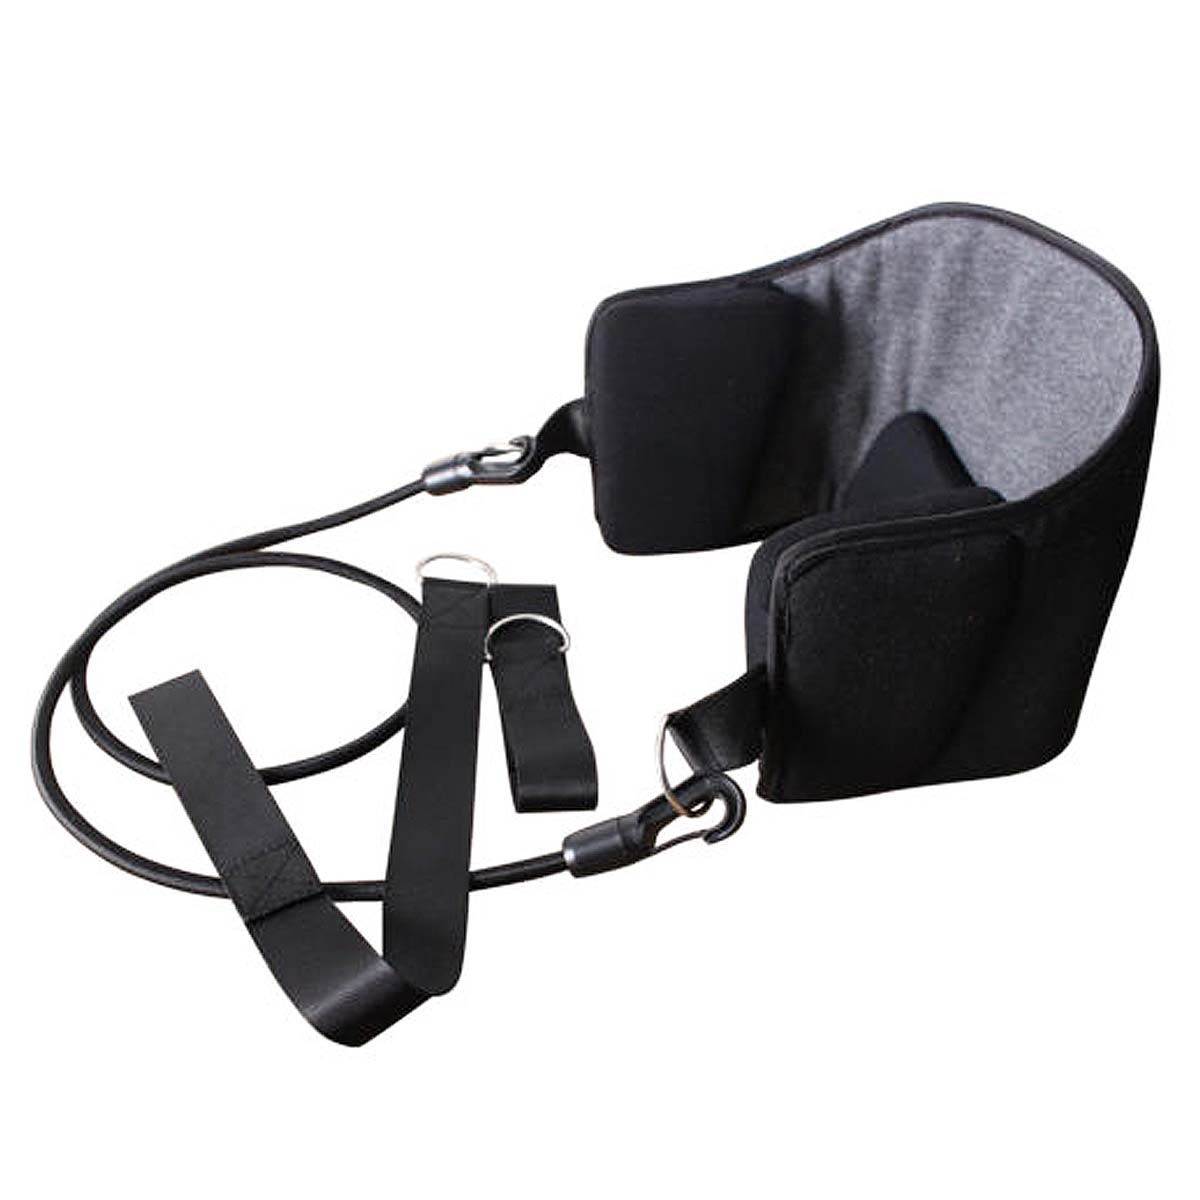 Neck Traction Hammock For Head And Neck Pain Relief